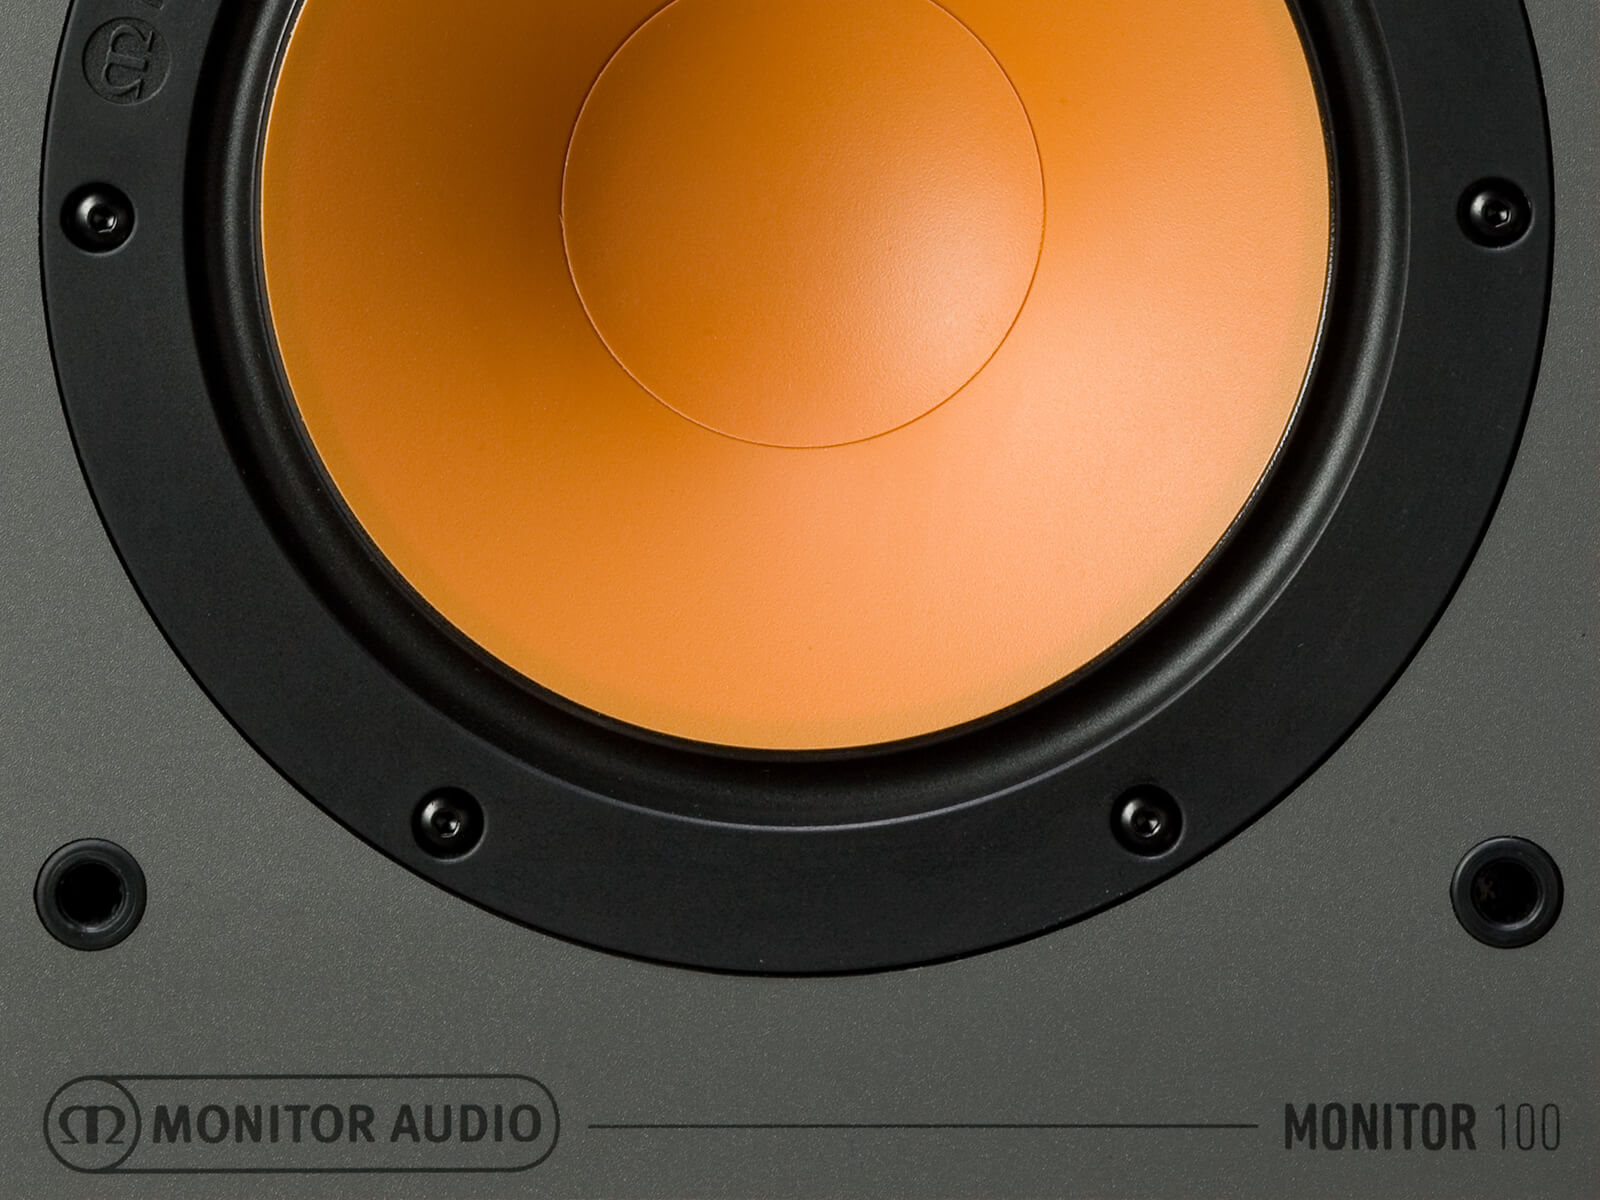 Monitor 100, bookshelf speakers, front detail.